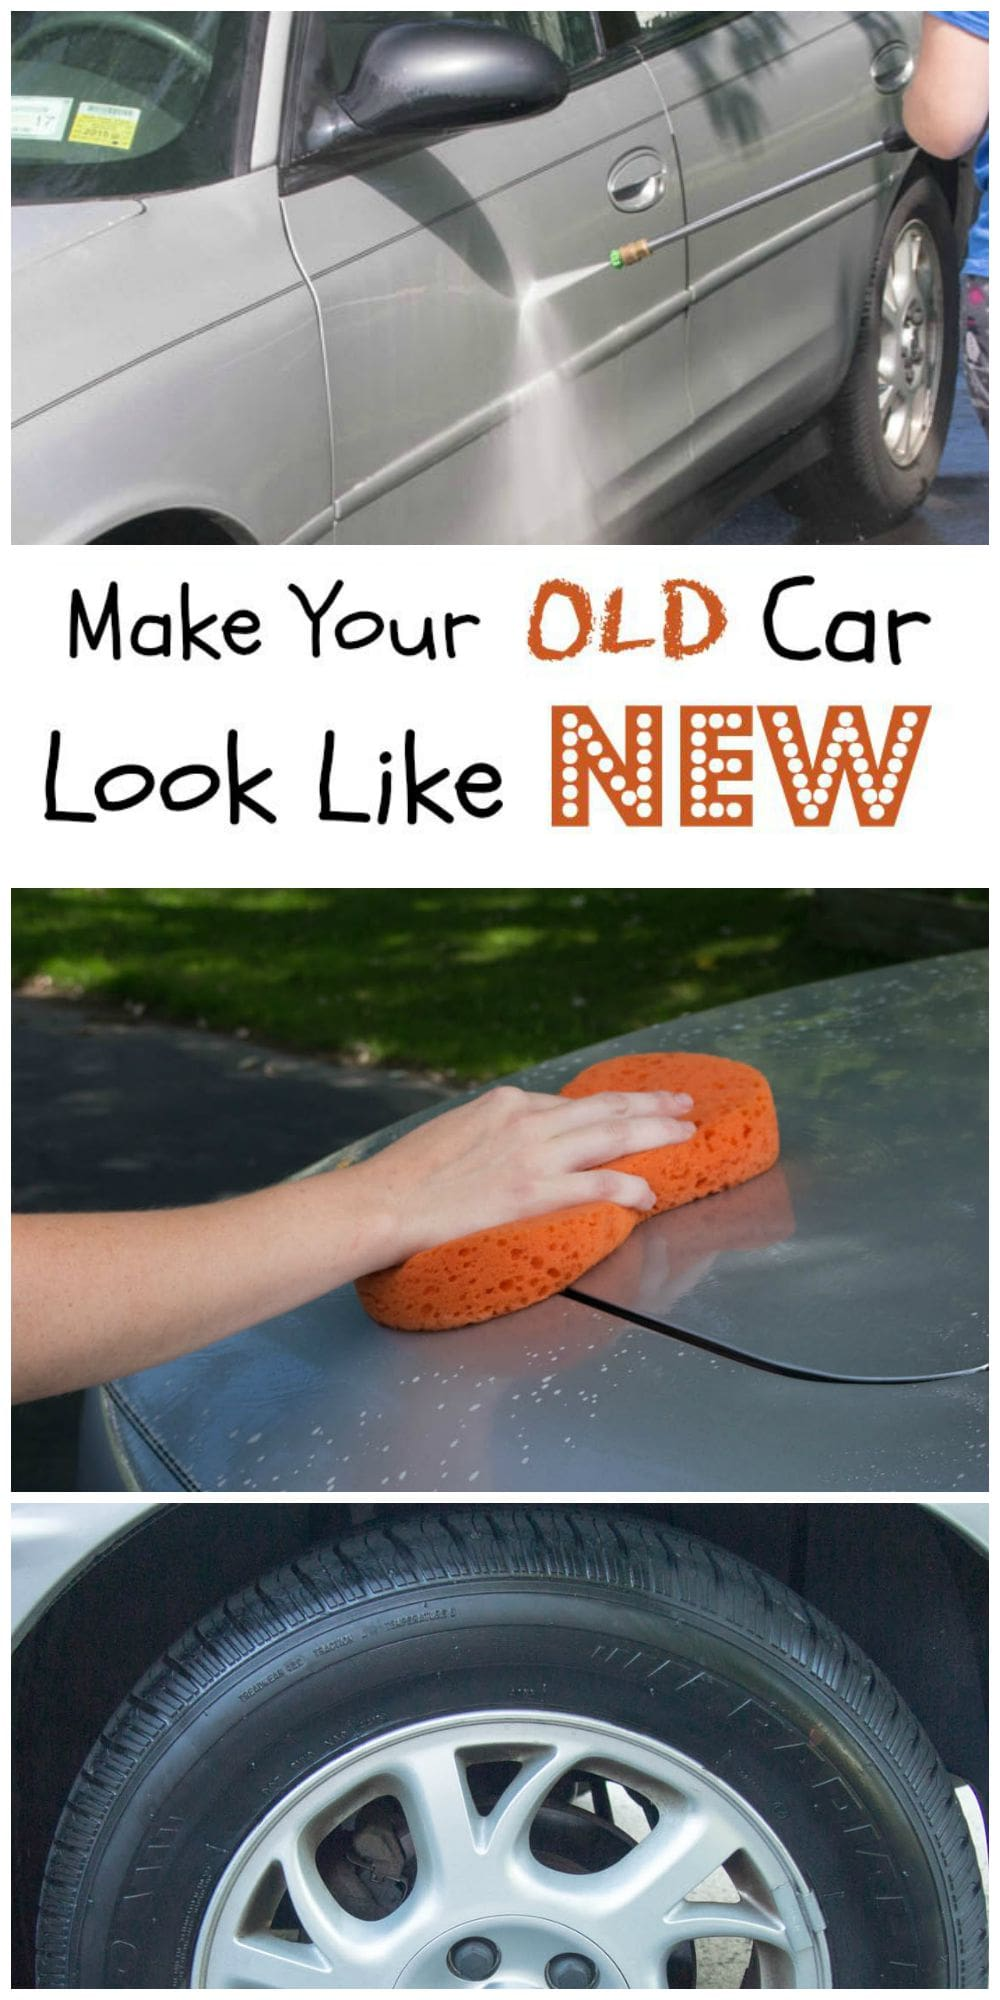 Make Your Old Car Look Like New - Get your car ready for college with these seven easy steps for making an old car look like new and getting your car college ready.